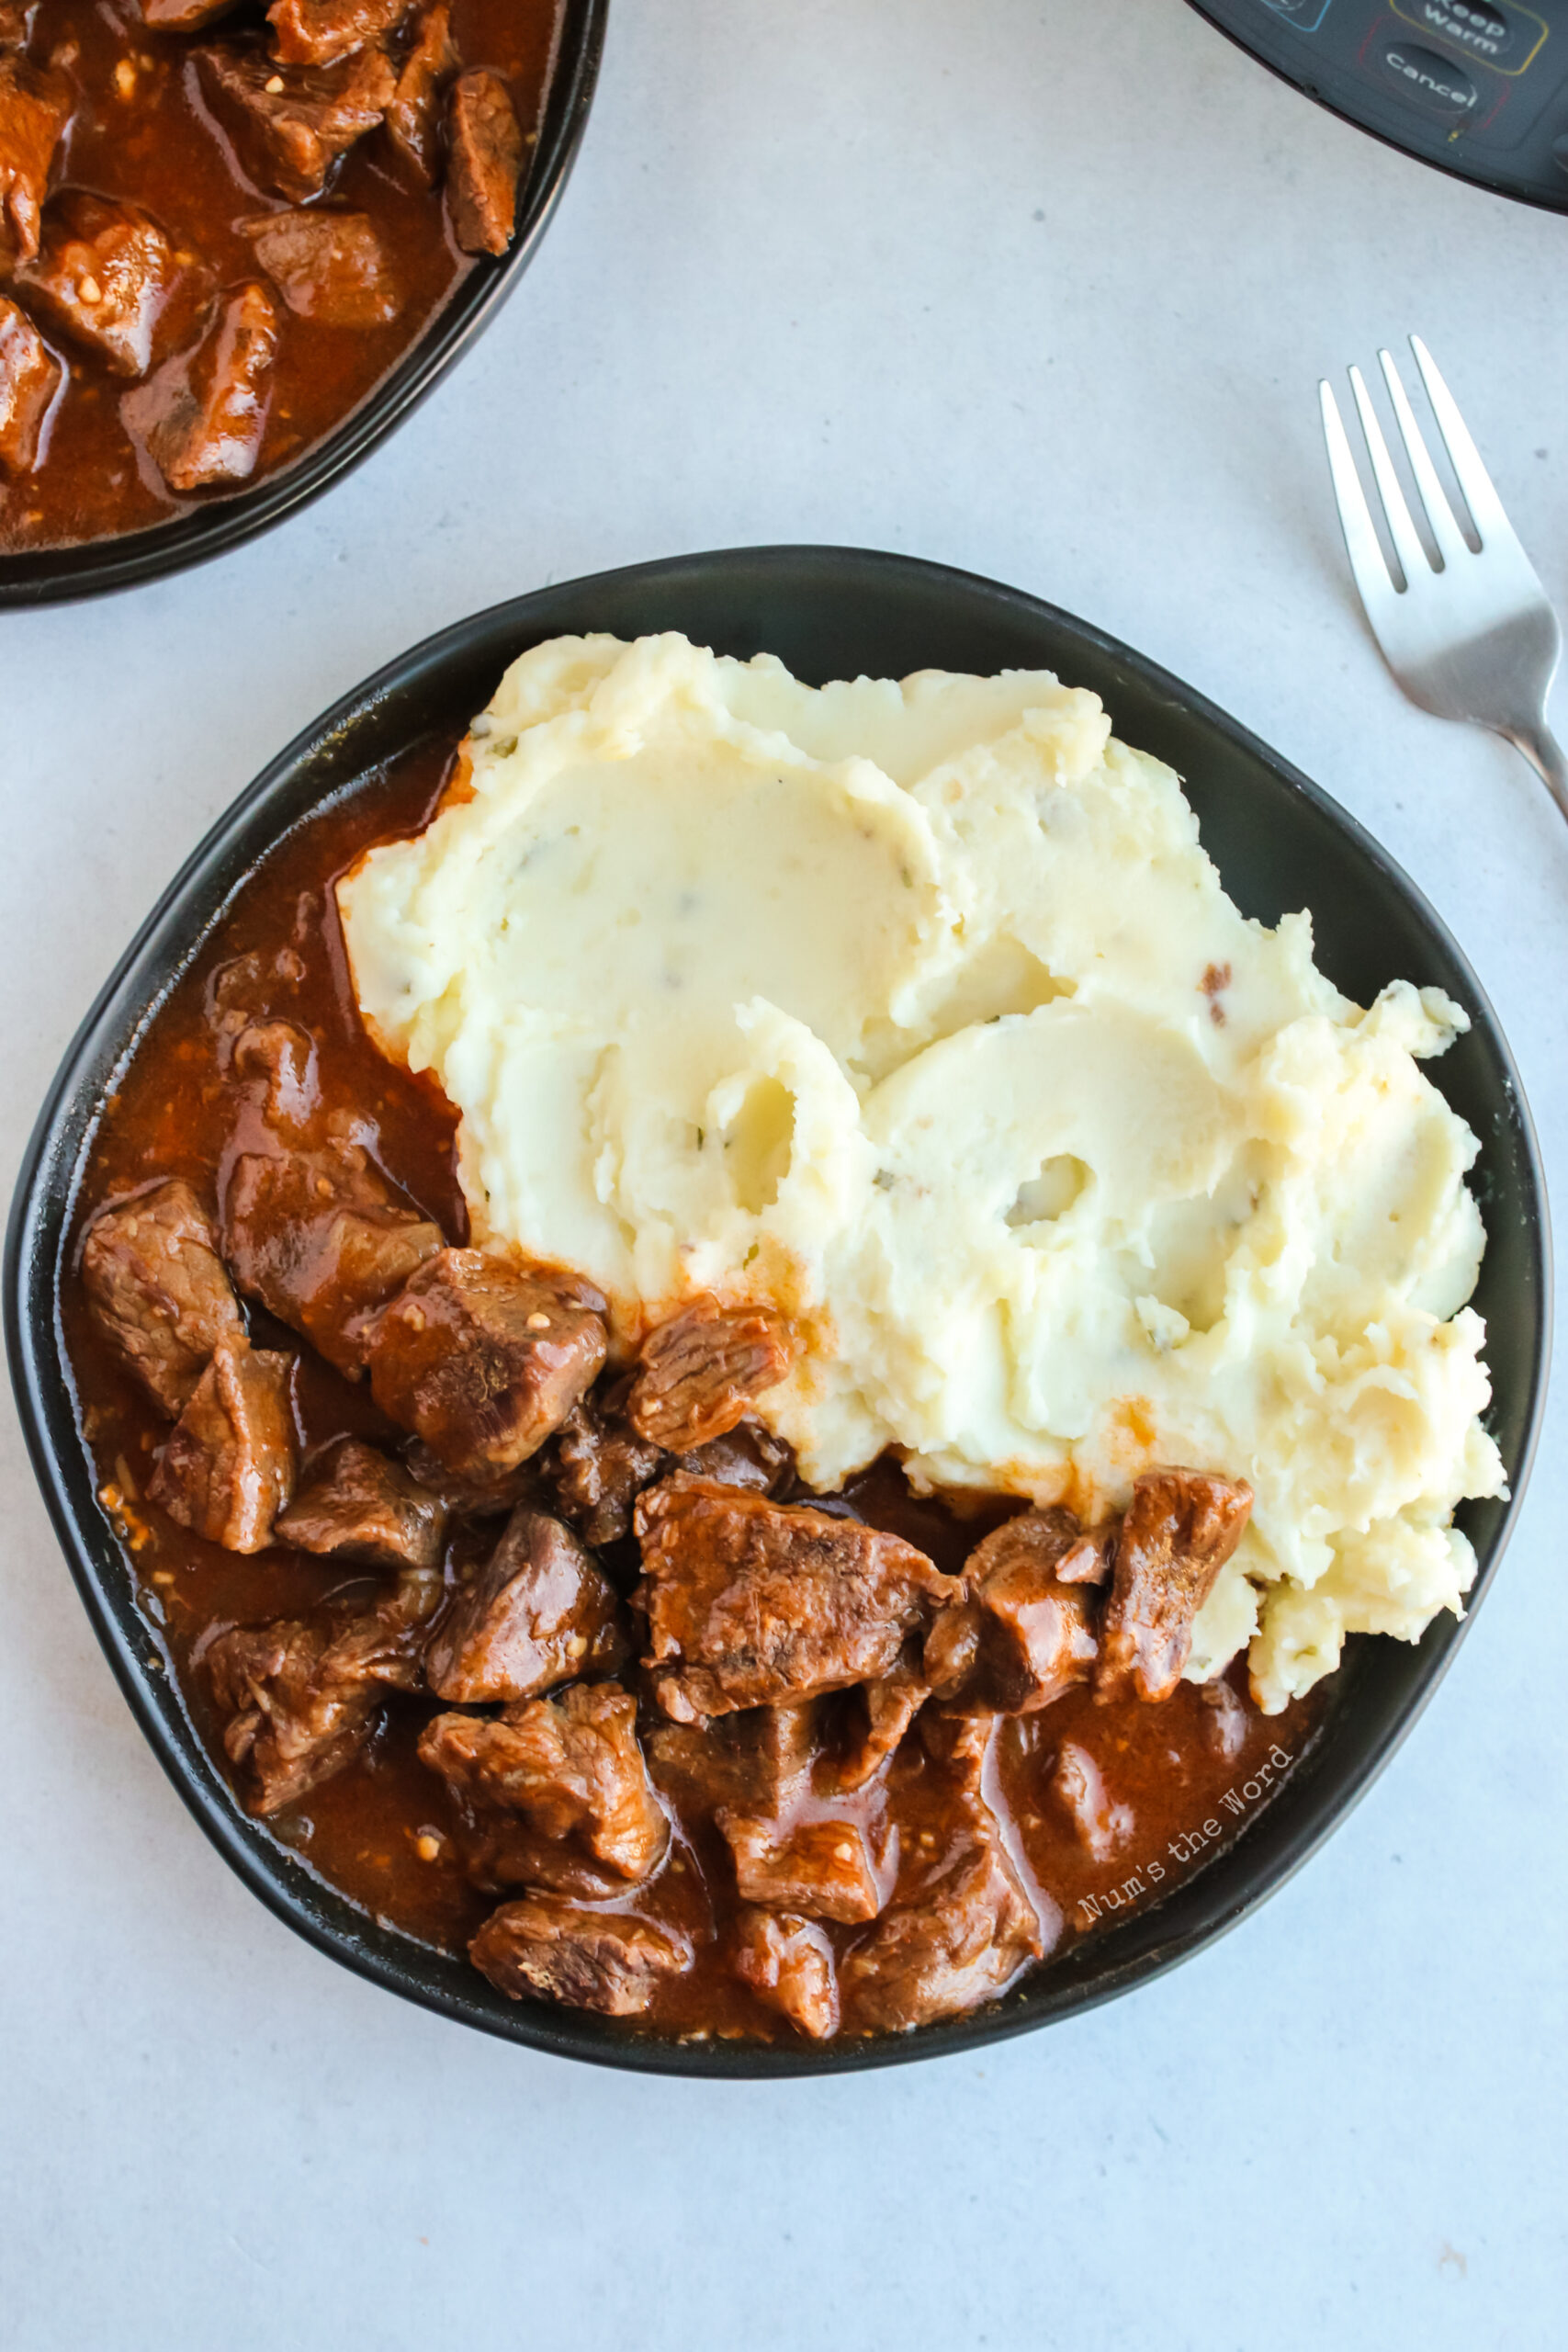 close up of plate with mashed potatoes and beef paprikash.